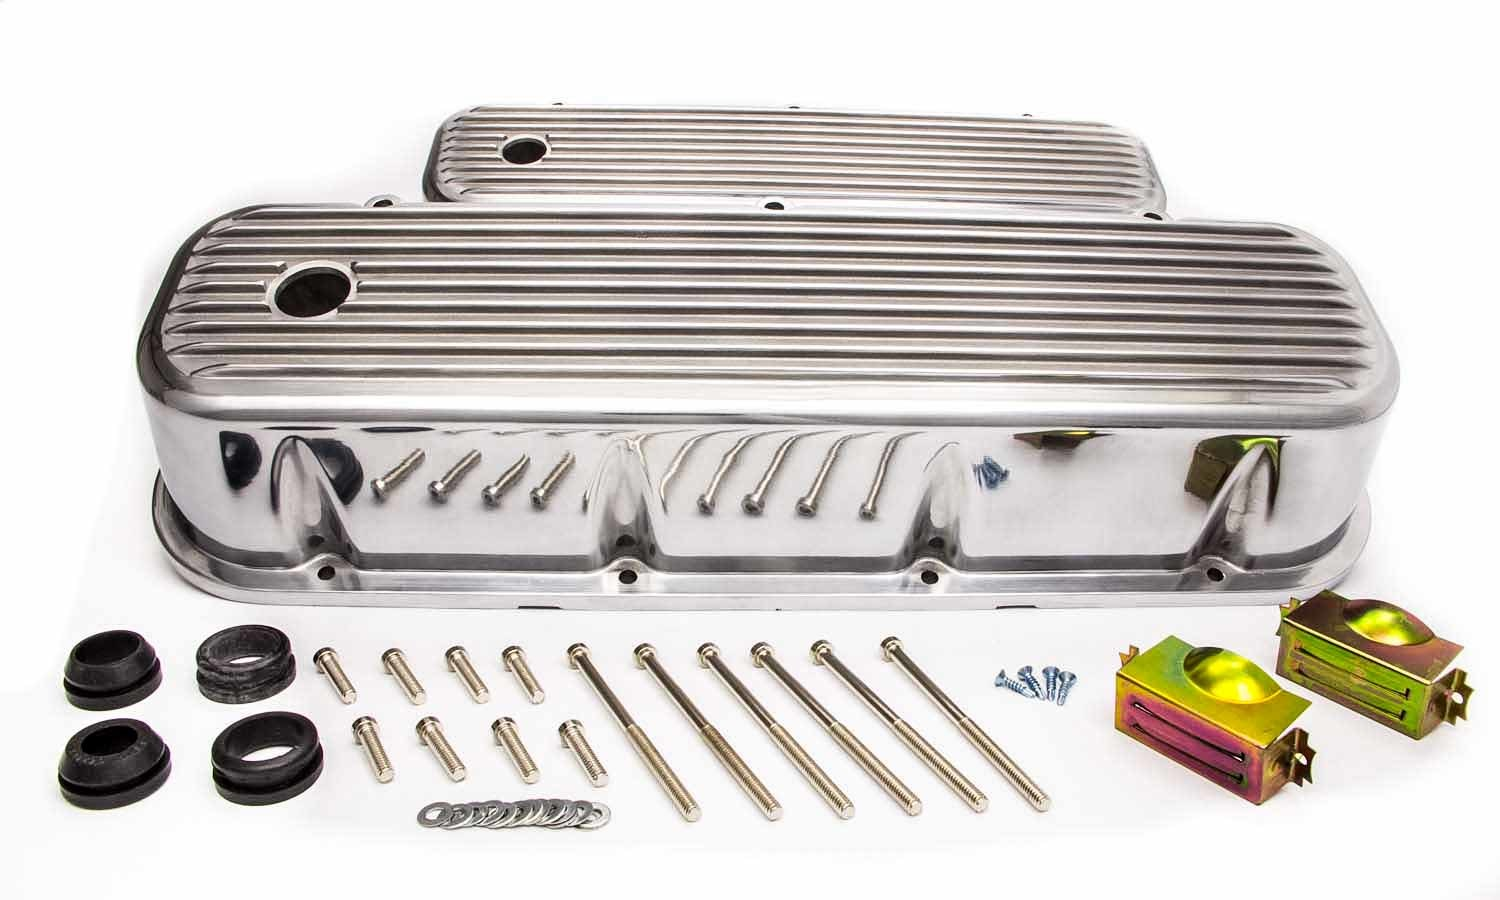 Racing Power Company R6280 Valve Cover, Tall, 4 in Height, Baffled, Breather Holes, Top Finned, Aluminum, Polished, Big Block Chevy, Pair